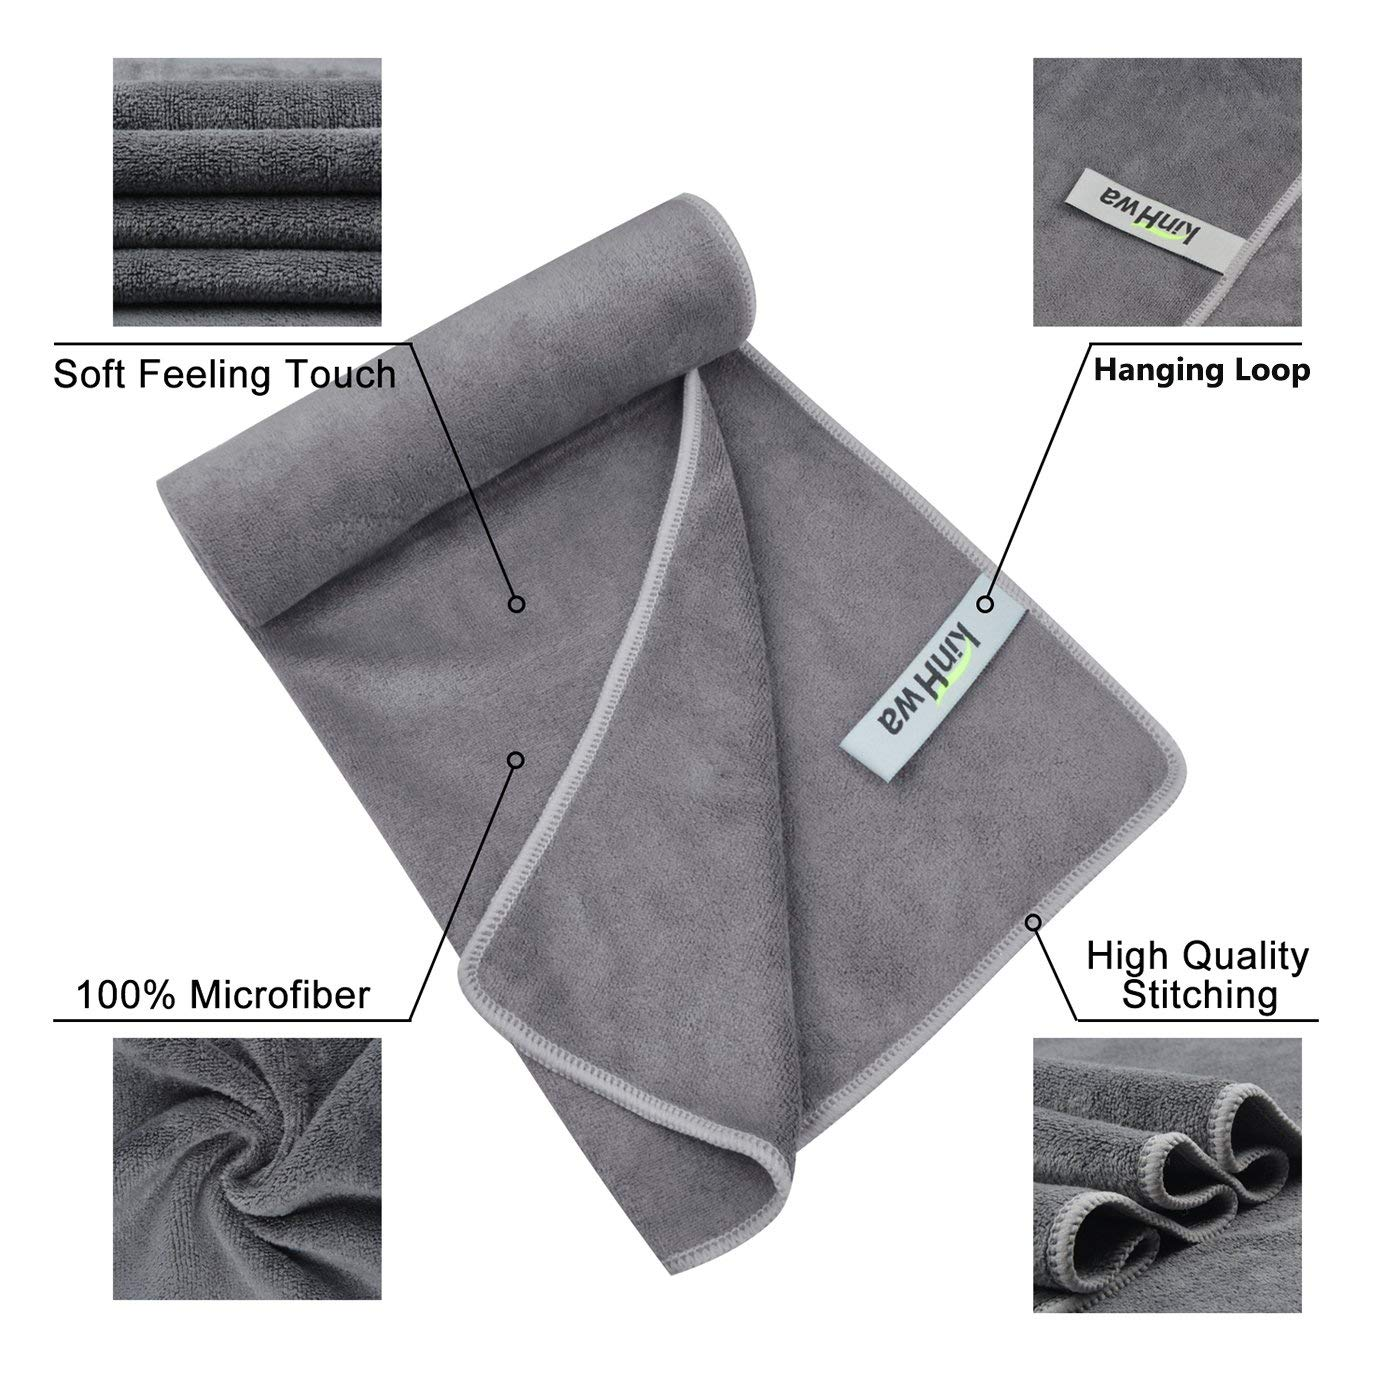 4 Pack Car Seat Headrest Hooks Strong and Durable Backseat Headrest Hanger Storage for Handbags, Purses, Coats, and Grocery Bags, Universal Vehicle Car Seat Back Headrest (Include Drying Towel